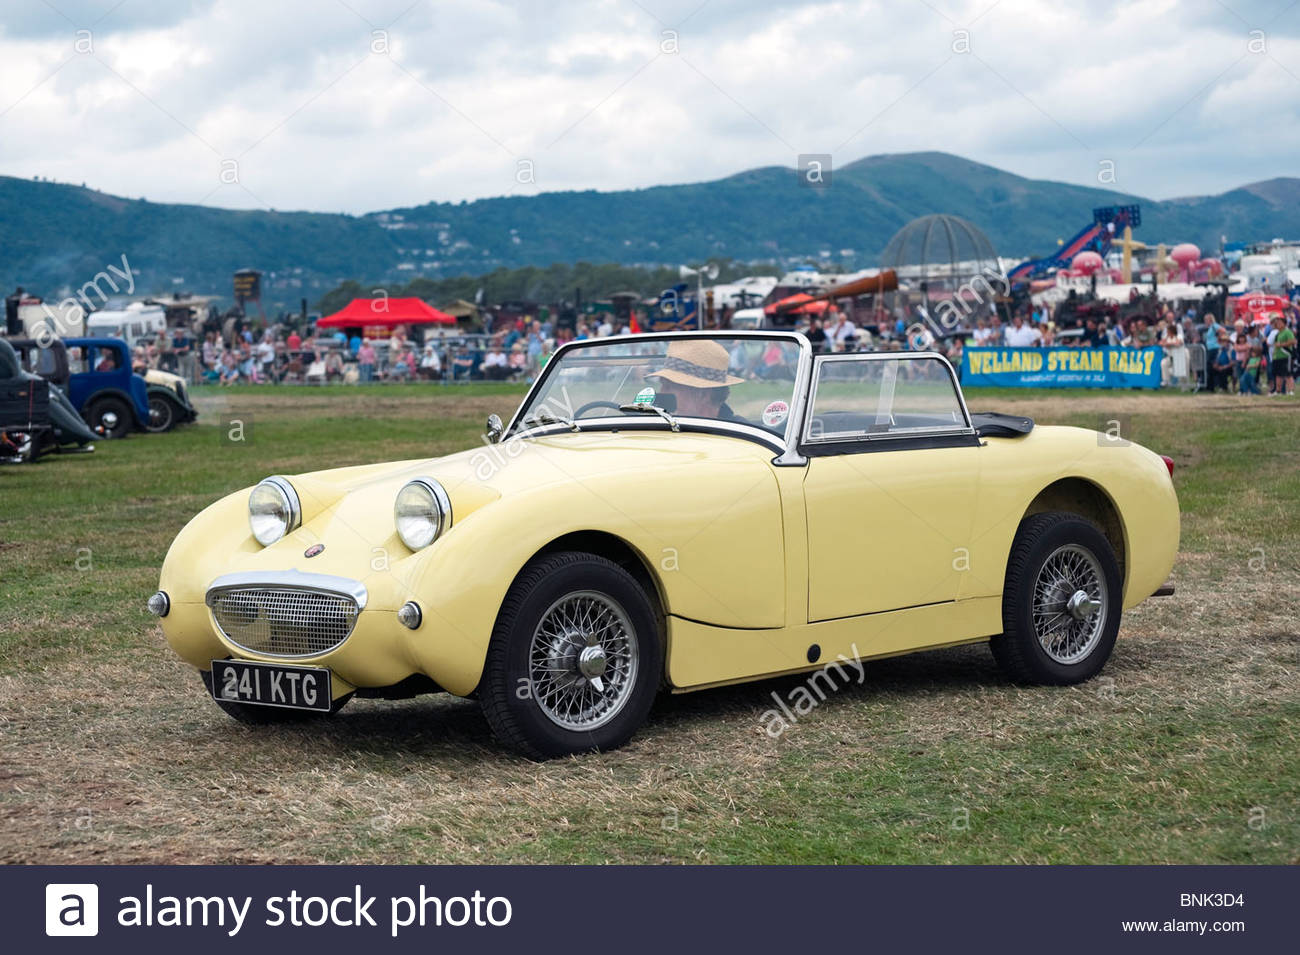 Austin Healey Sprite MK1 sports two seater car at the Welland 2010 Steam Rally & Show, UK. 1961 '241 KTG' - Stock Image